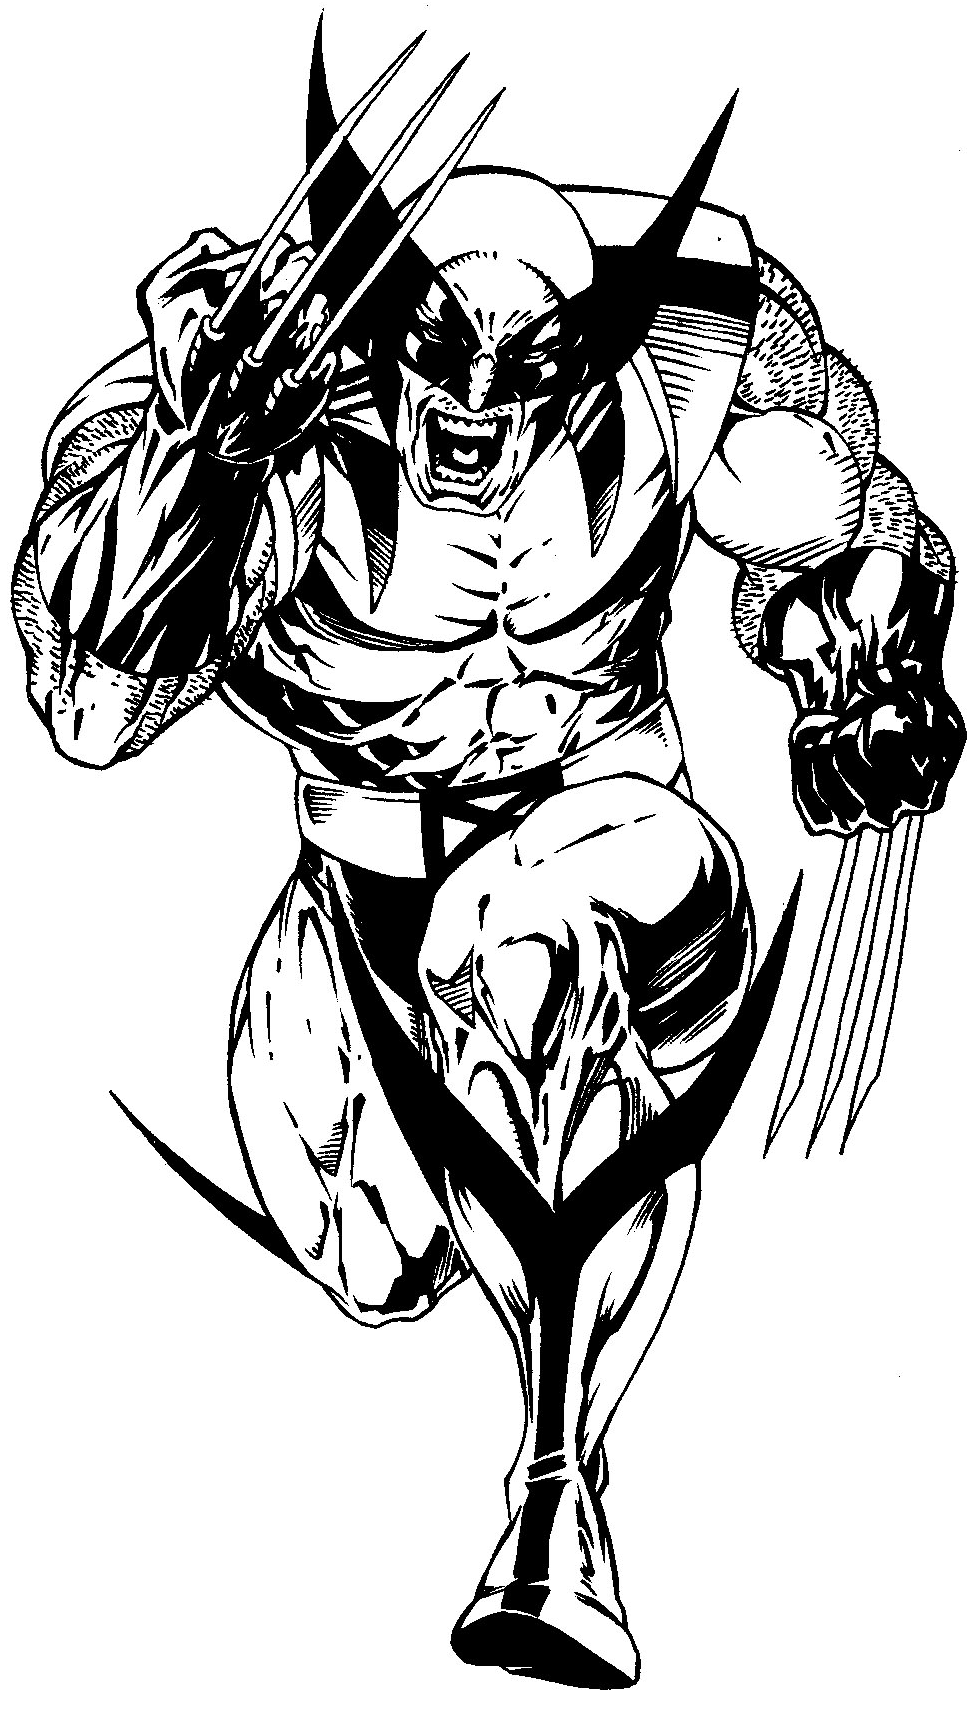 How to draw Wolverine from Marvel's X-Men Superhero Team with easy step by step drawing tutorial